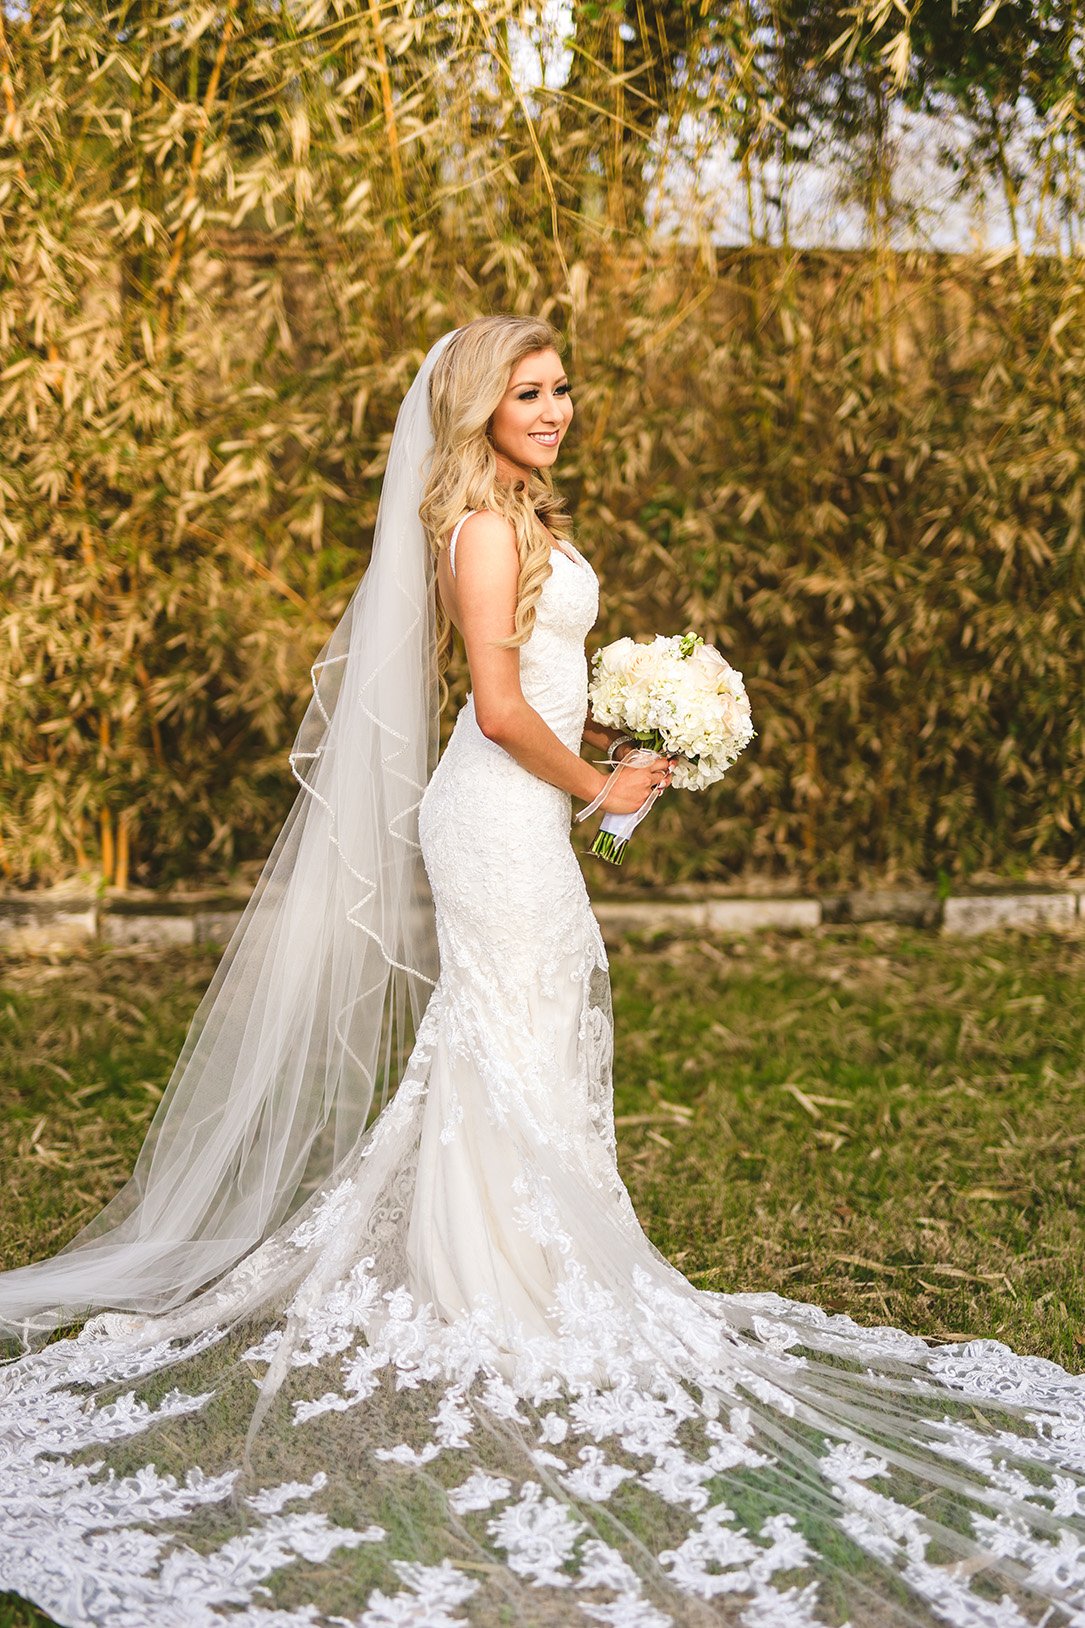 houston wedding, bridal shot, bride, wedding gown, lace train, veil